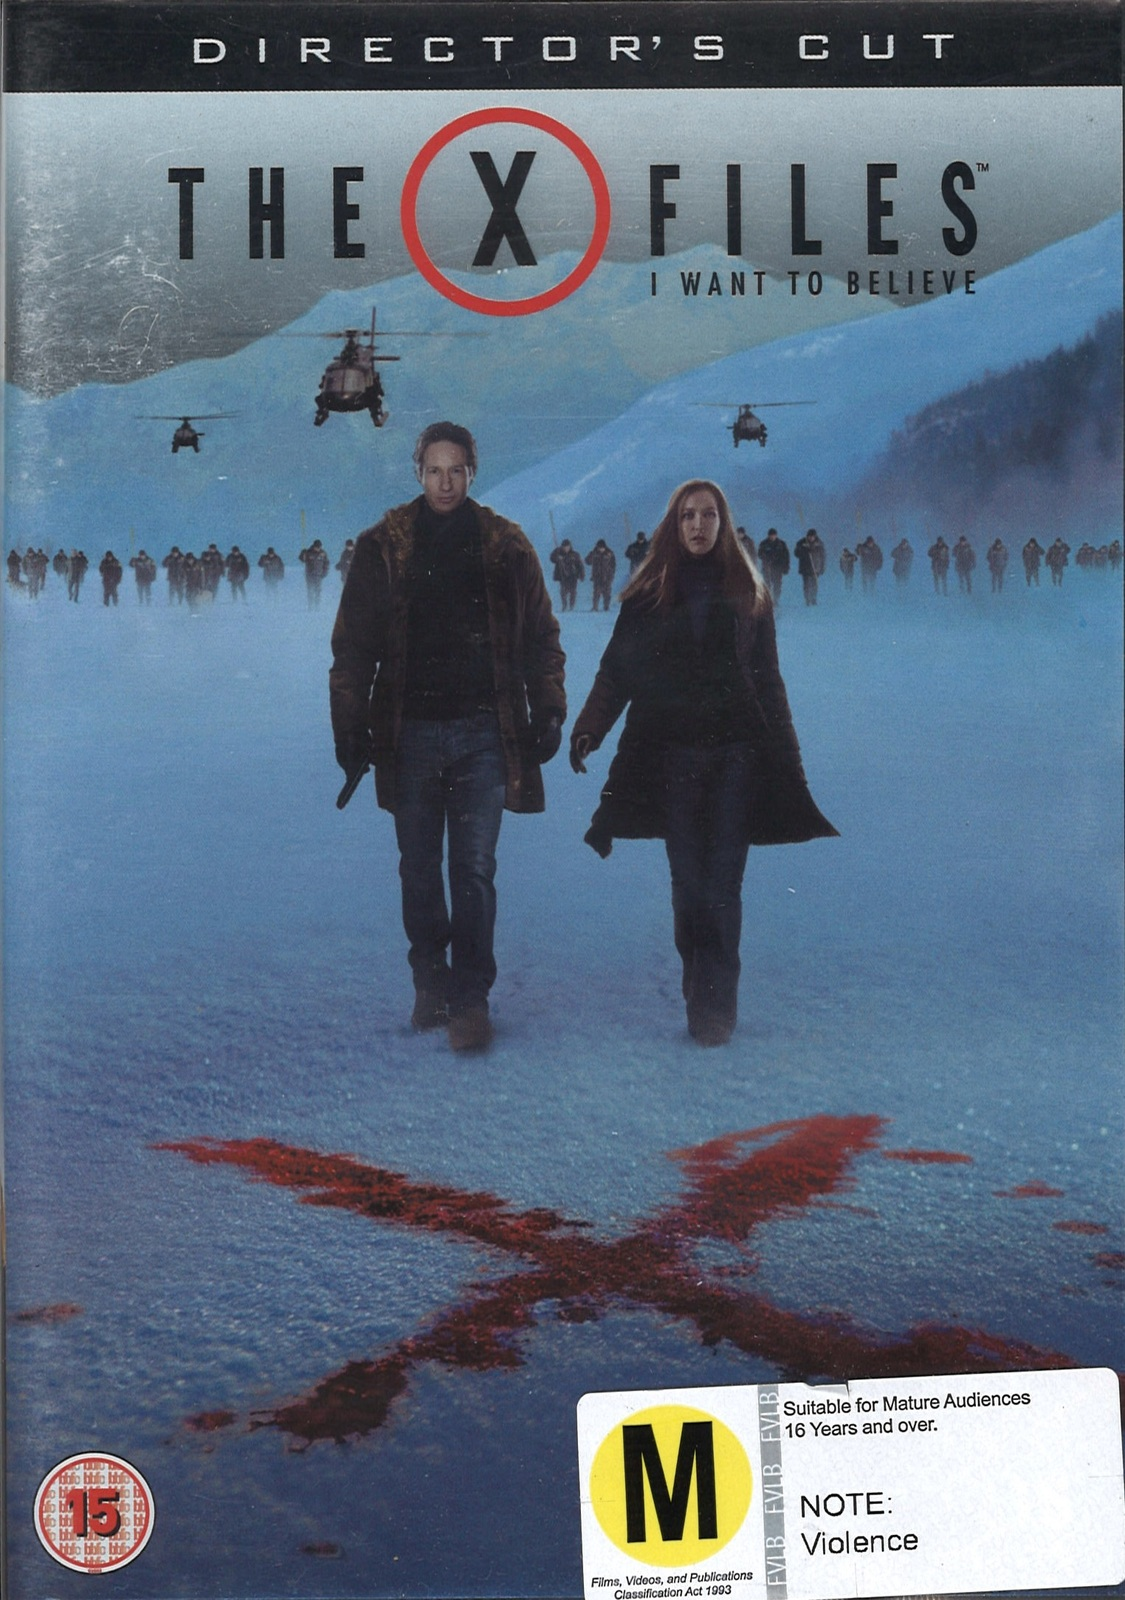 X Files Movie: I Want To Believe (Director's Cut) on DVD image